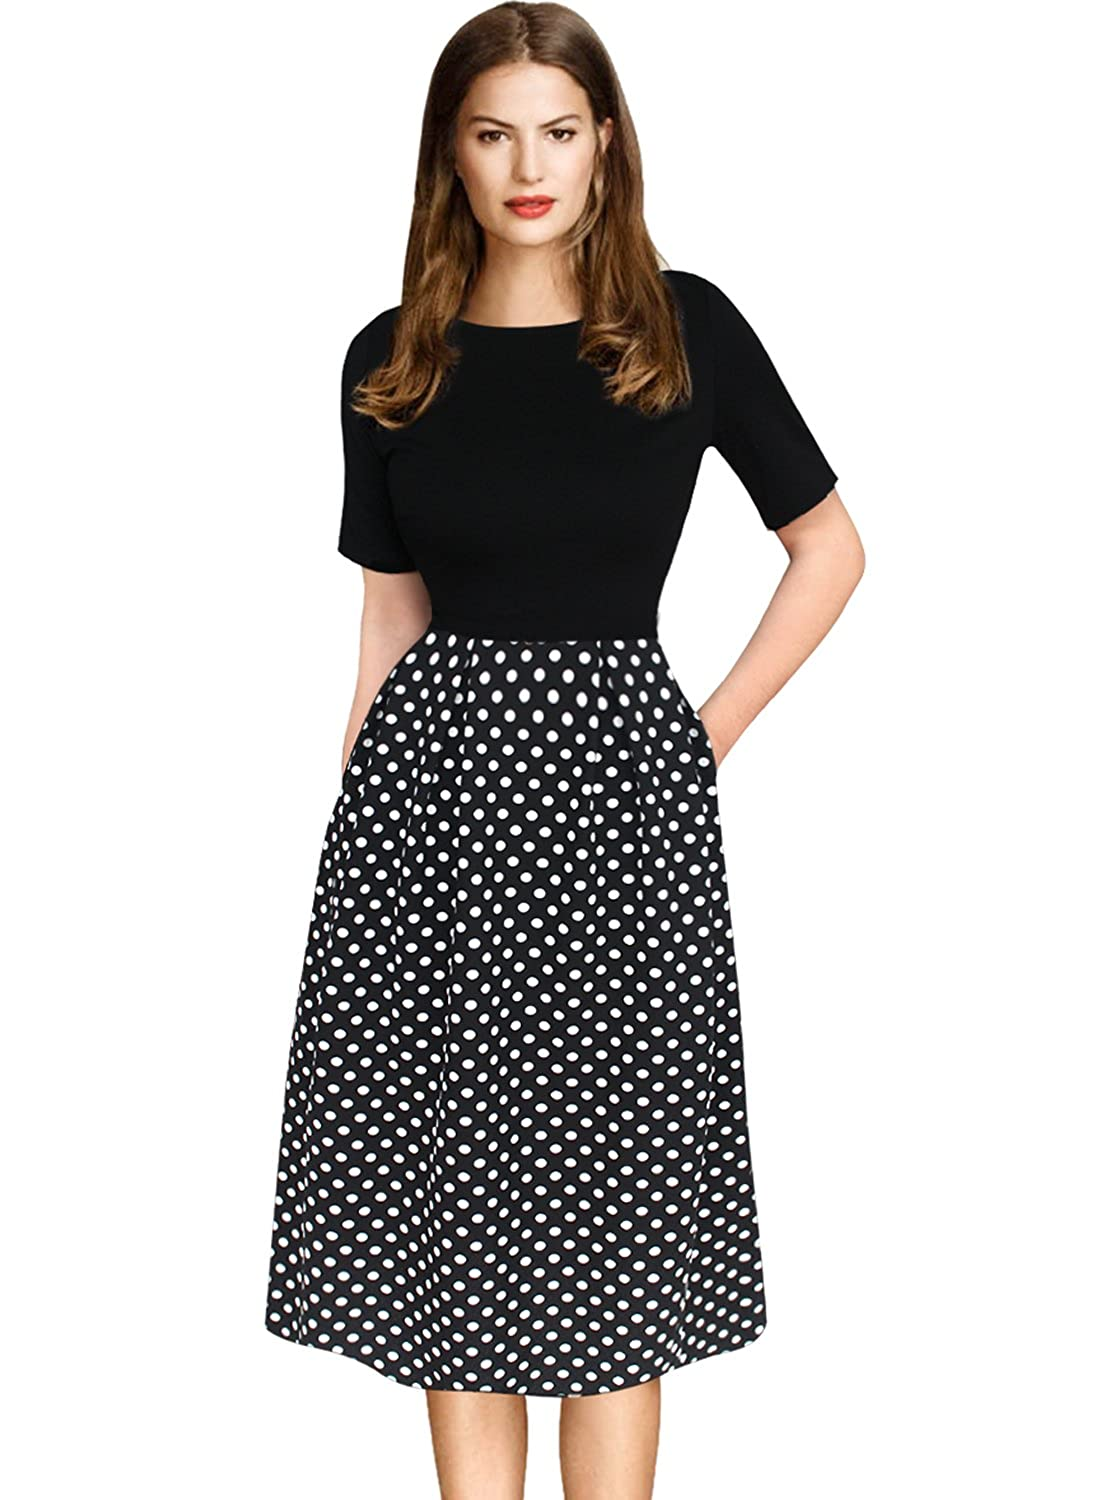 Black White Dotsummer Version VfEmage Womens Vintage Summer Polka Dot Wear To Work Casual Aline Dress